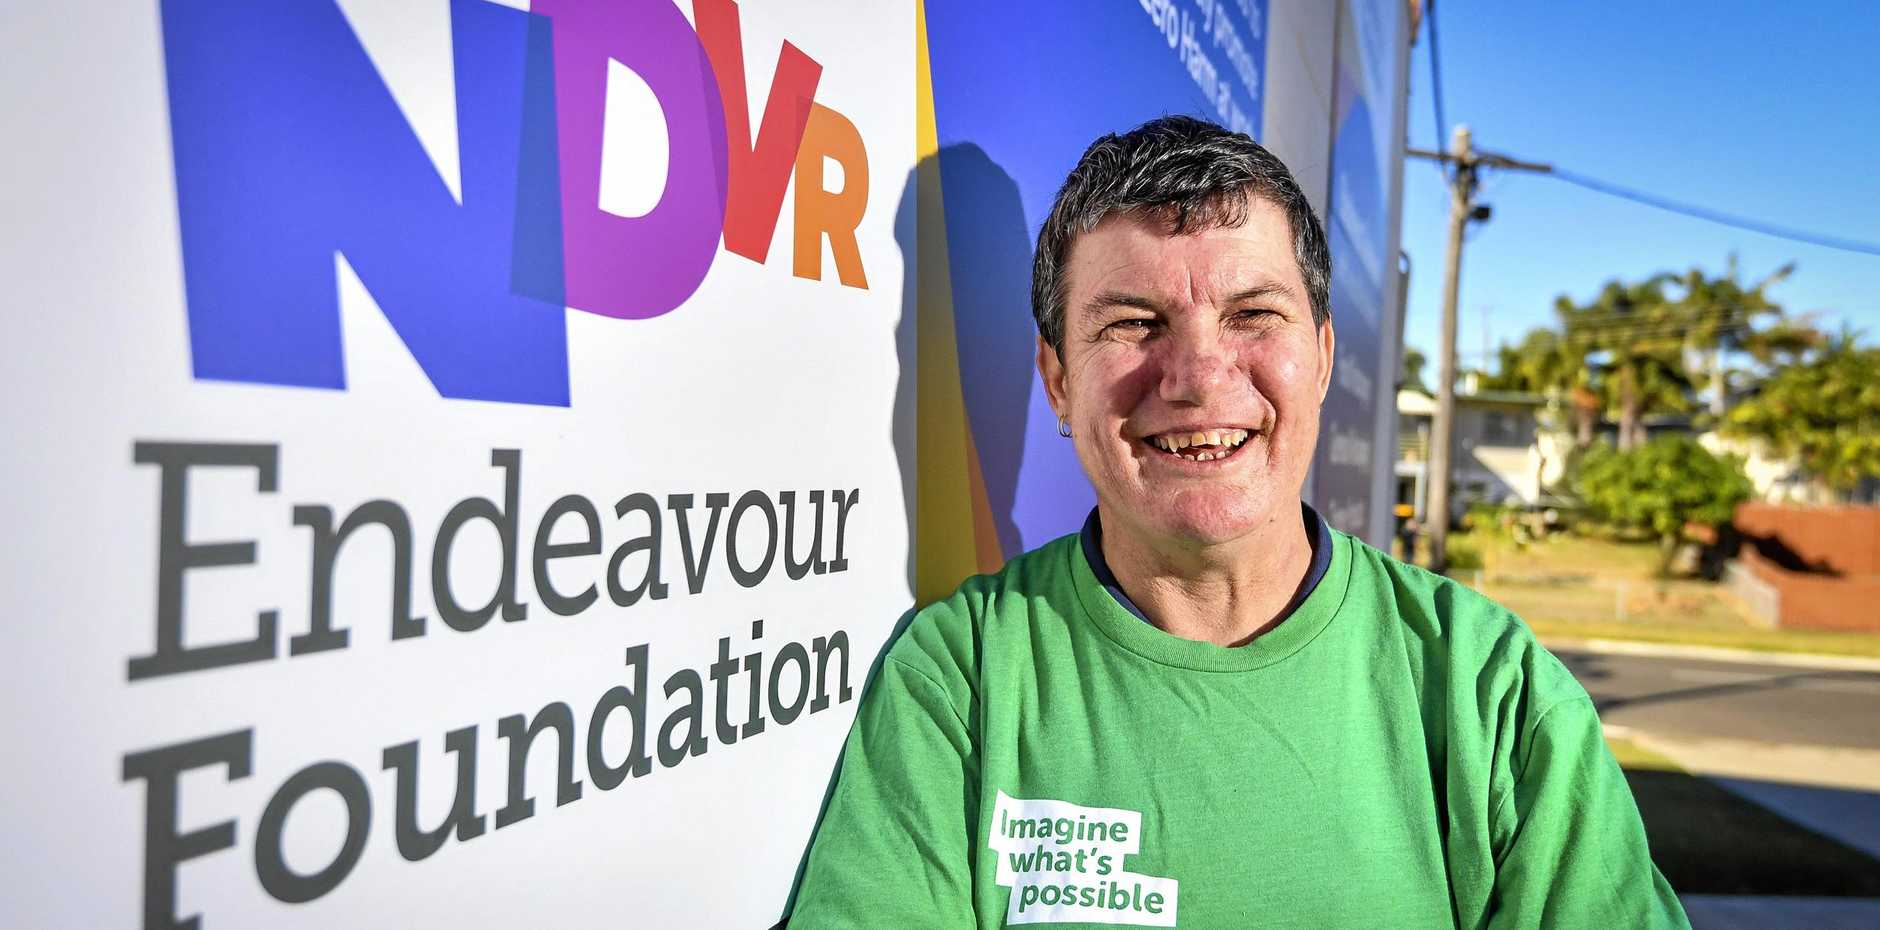 Gladstone woman Racquel Nugest, who works for the Endeavour Foundation, has been selected to take part in the Great Endeavour Rally.